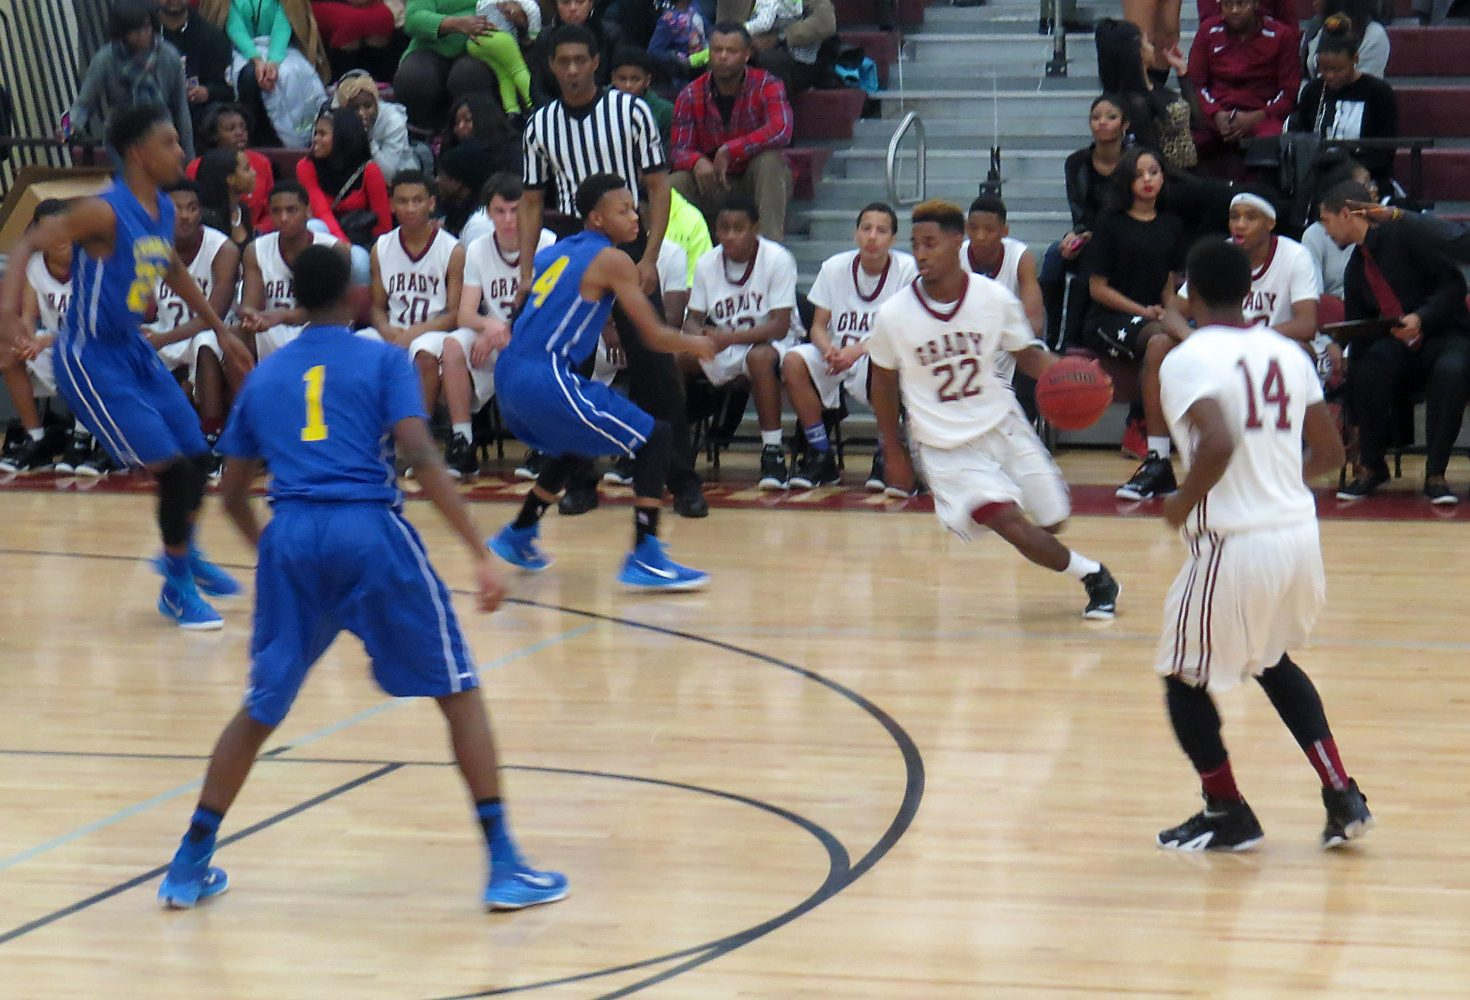 Boys basketball suffers first-round playoff exit